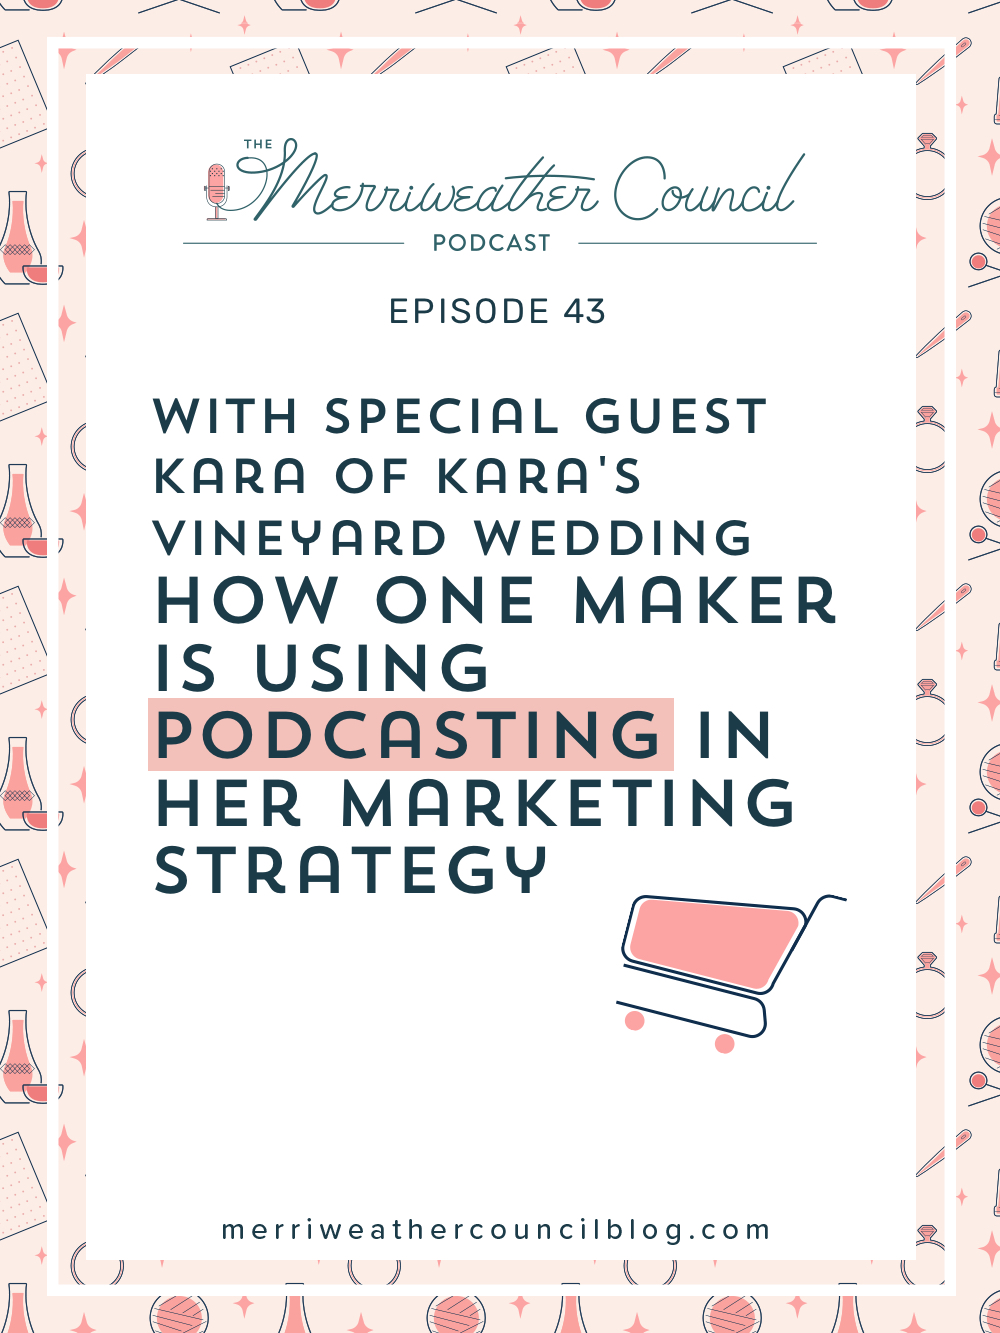 In this episode of The Merriweather Council Podcast, hear from Kara Lamerato about how her podcasting marketing strategy is supporting and advertising her business. | The Merriweather Council